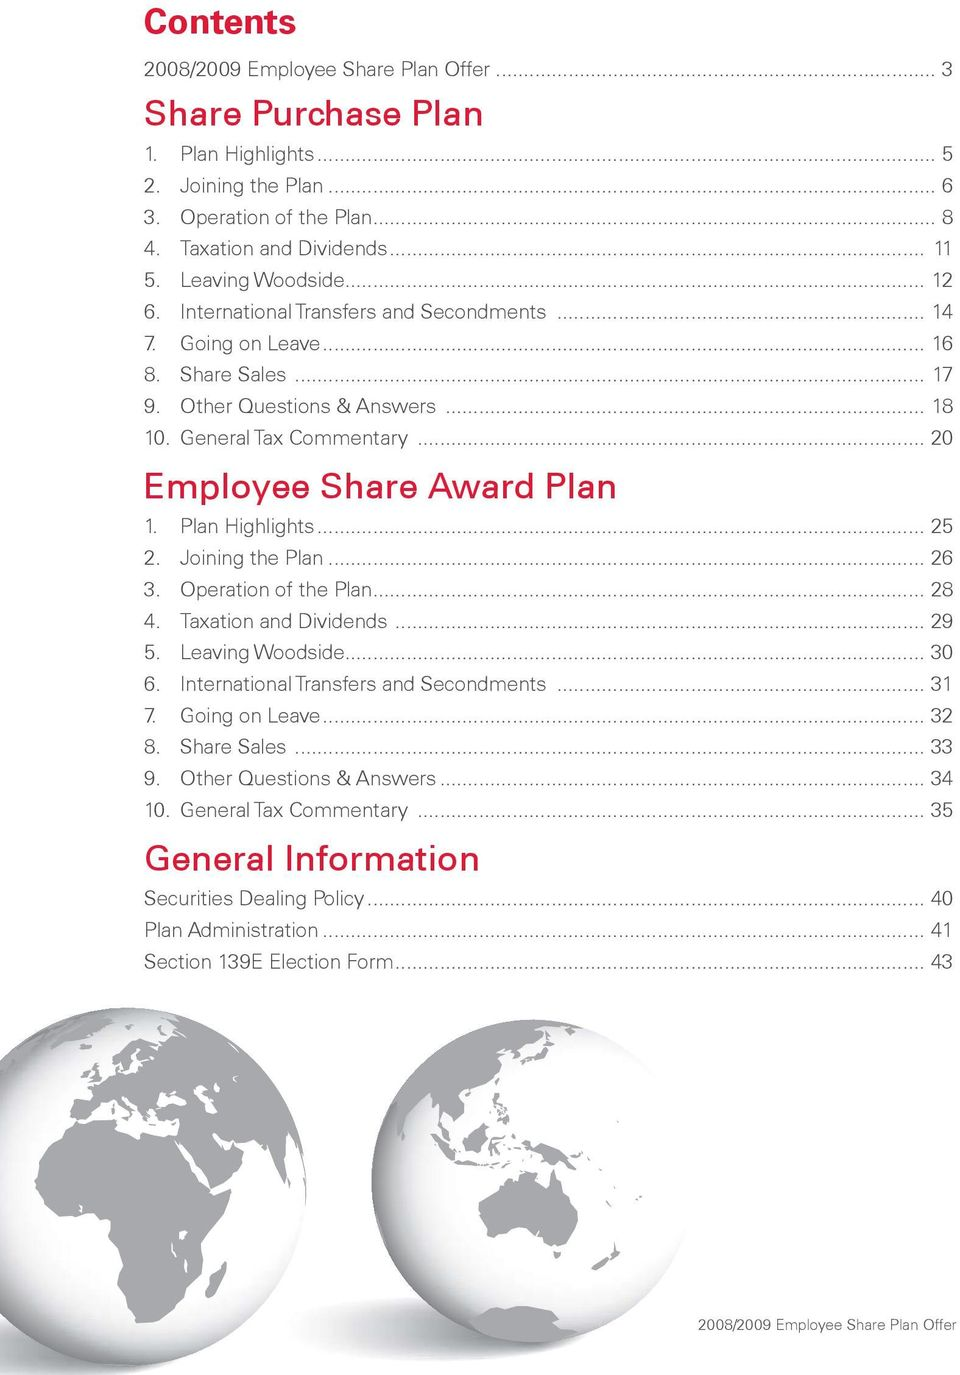 .. 20 Employee Share Award Plan 1. Plan Highlights... 25 2. Joining the Plan... 26 3. Operation of the Plan... 28 4. Taxation and Dividends... 29 5. Leaving Woodside... 30 6.